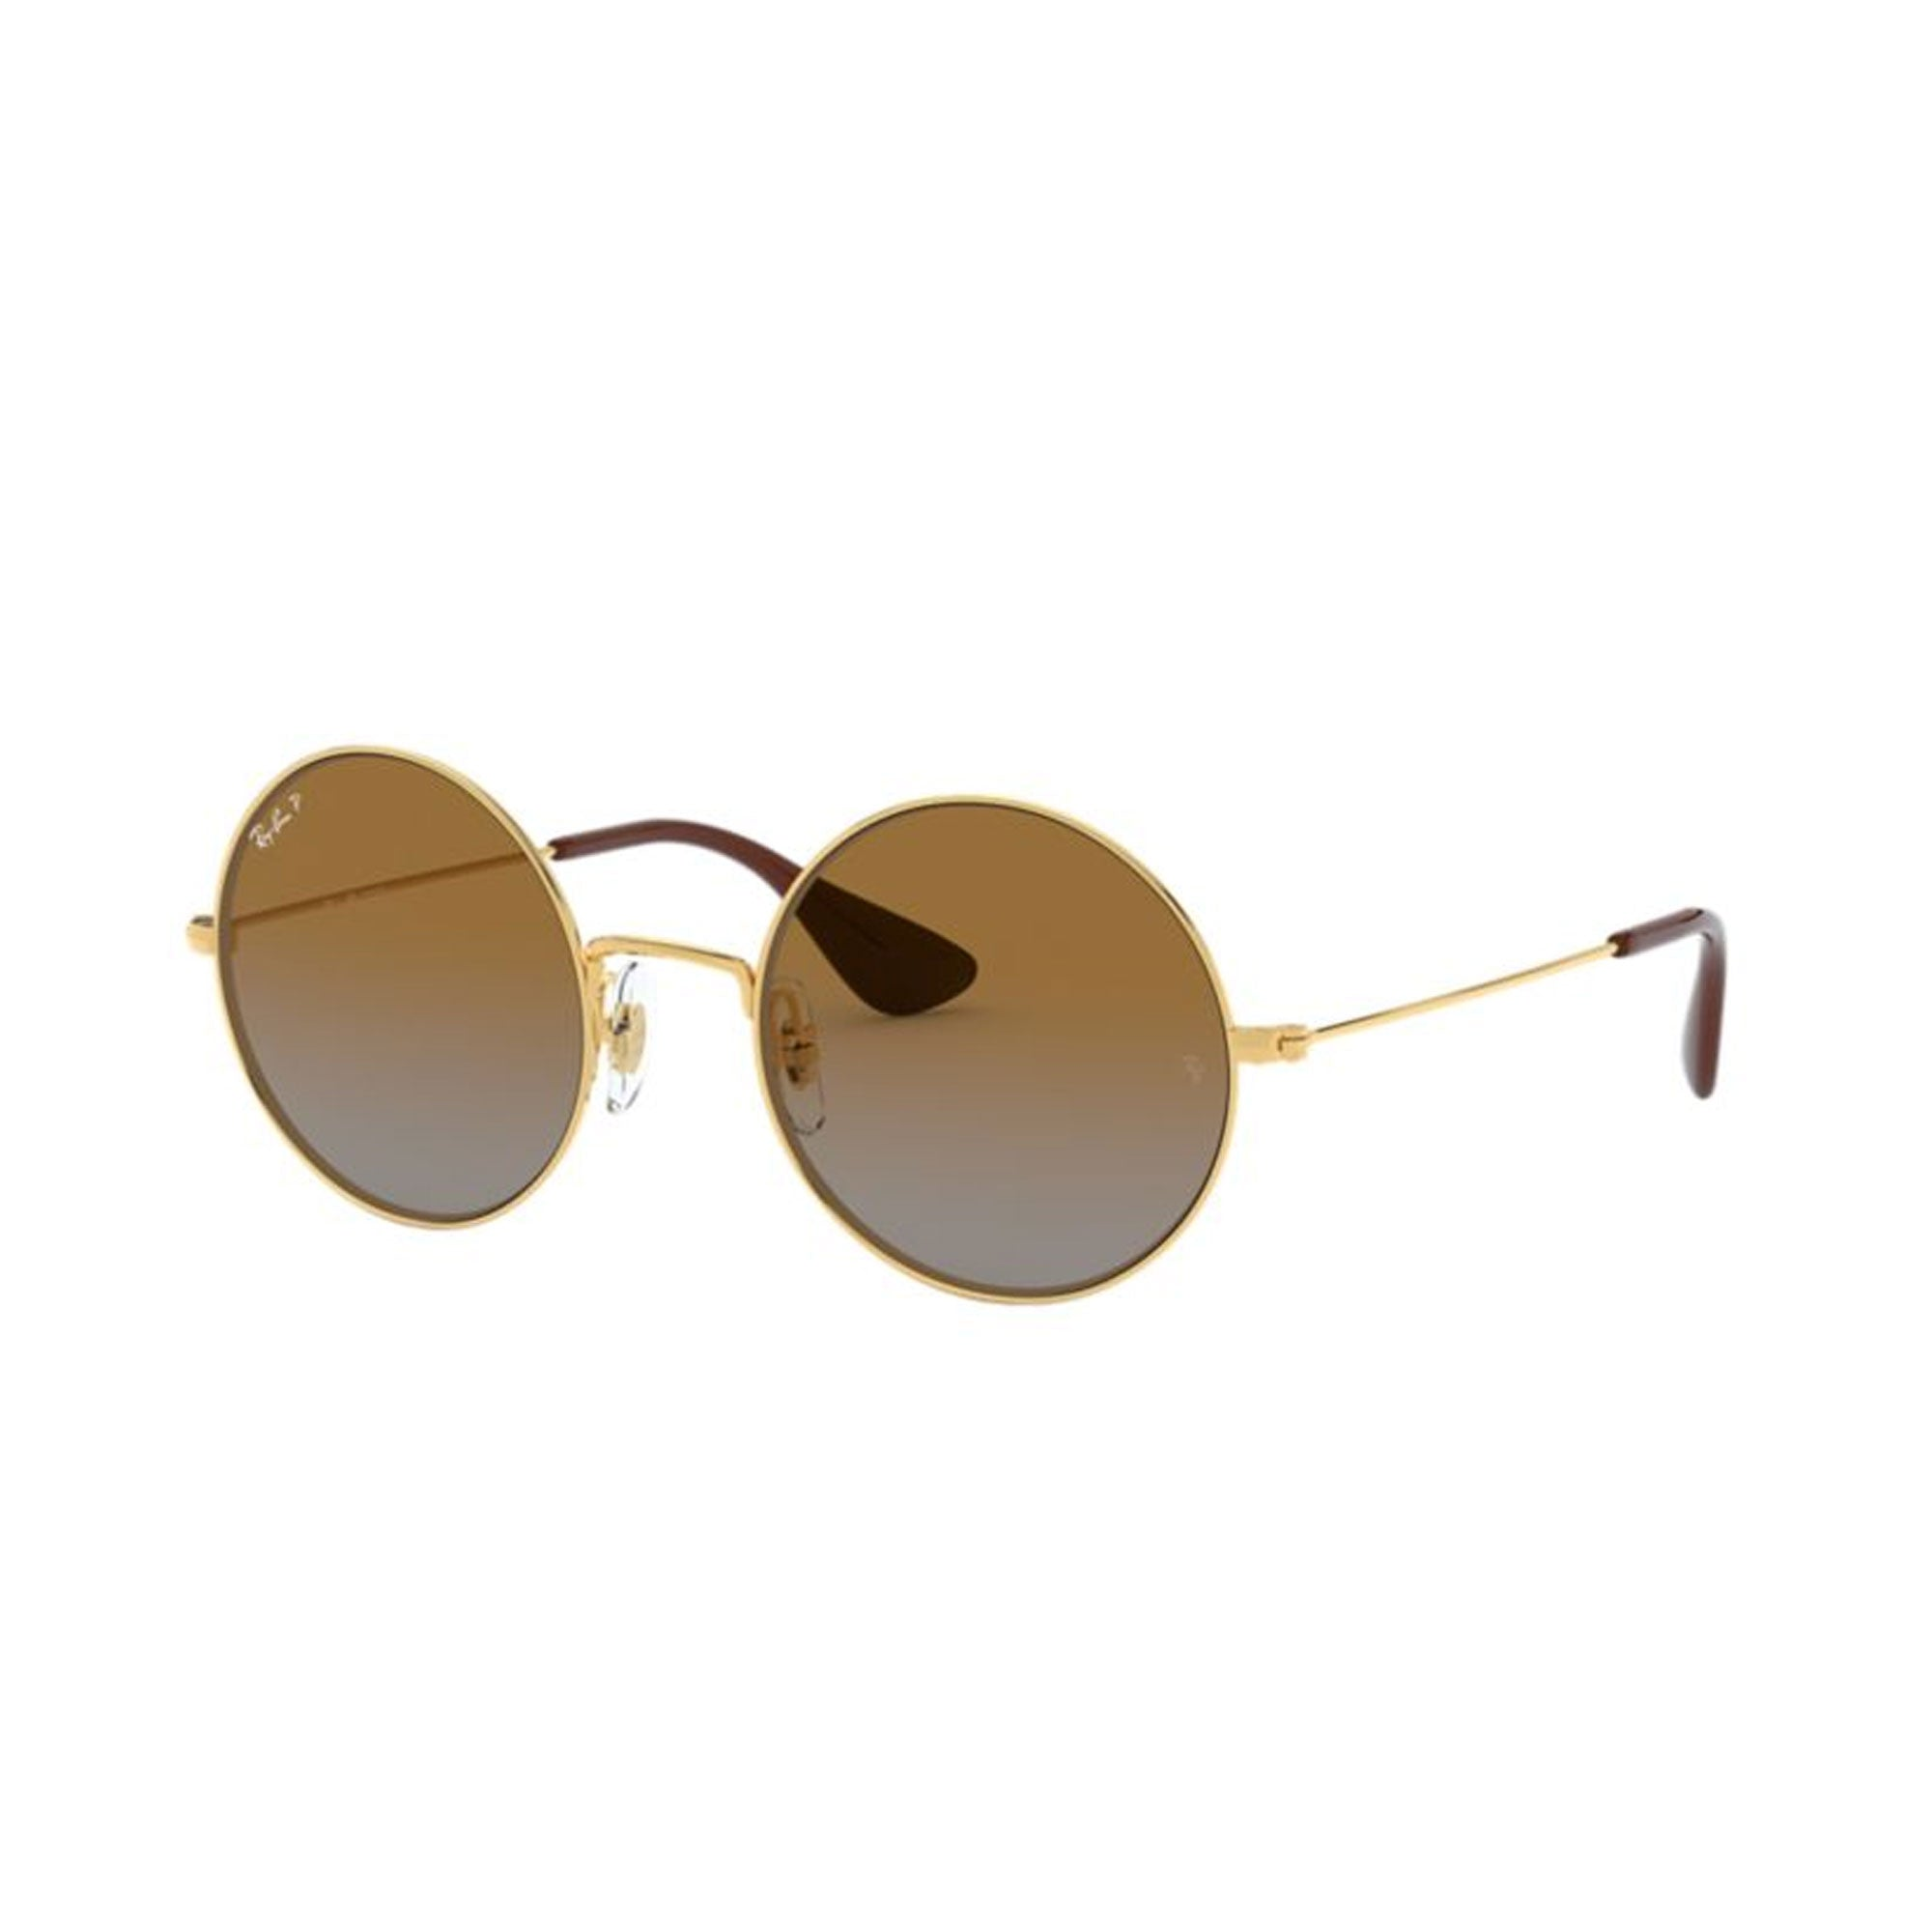 Ray-Ban Ja-Jo Women's Sunglasses - Gold/Brown Gradient